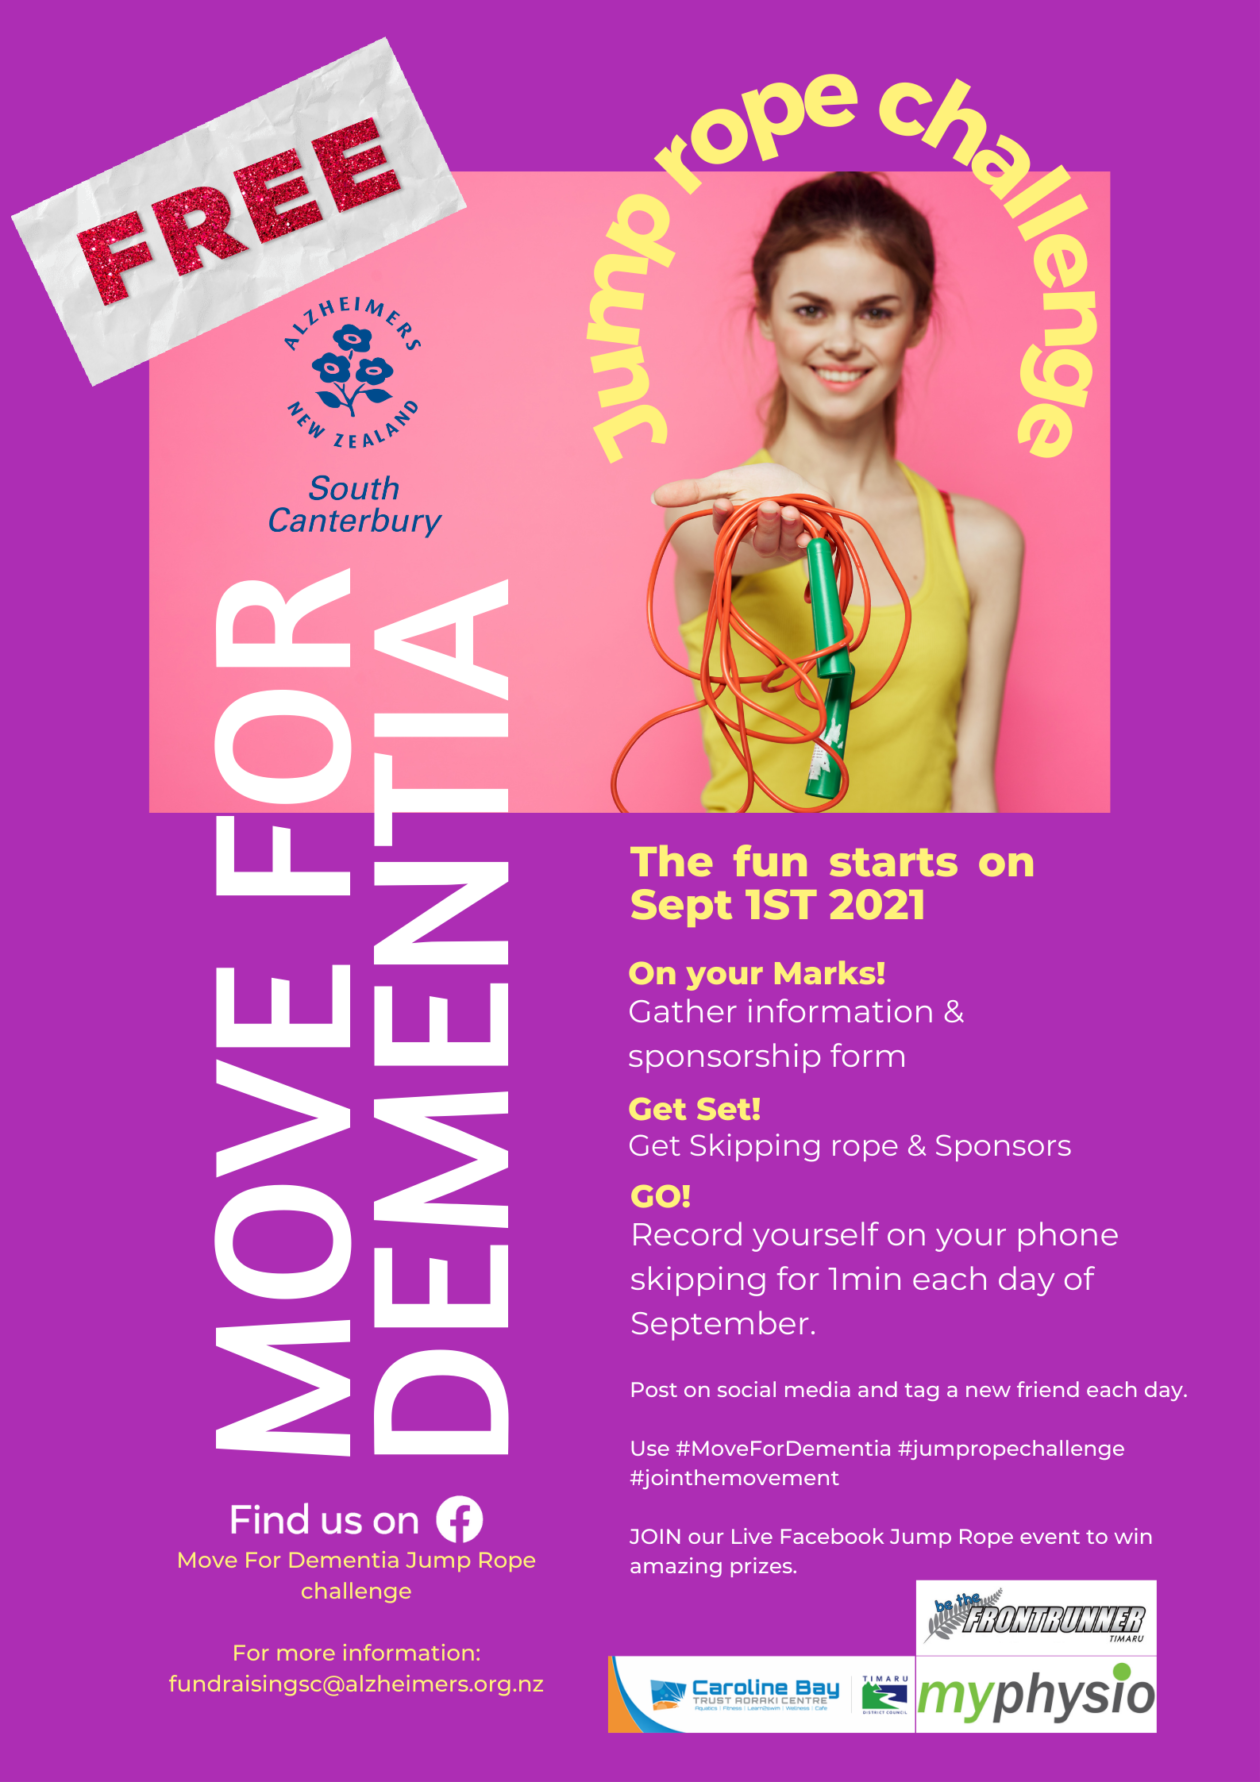 Move For Dementia with Jump Rope & Step Count Challenge Post Cover Image